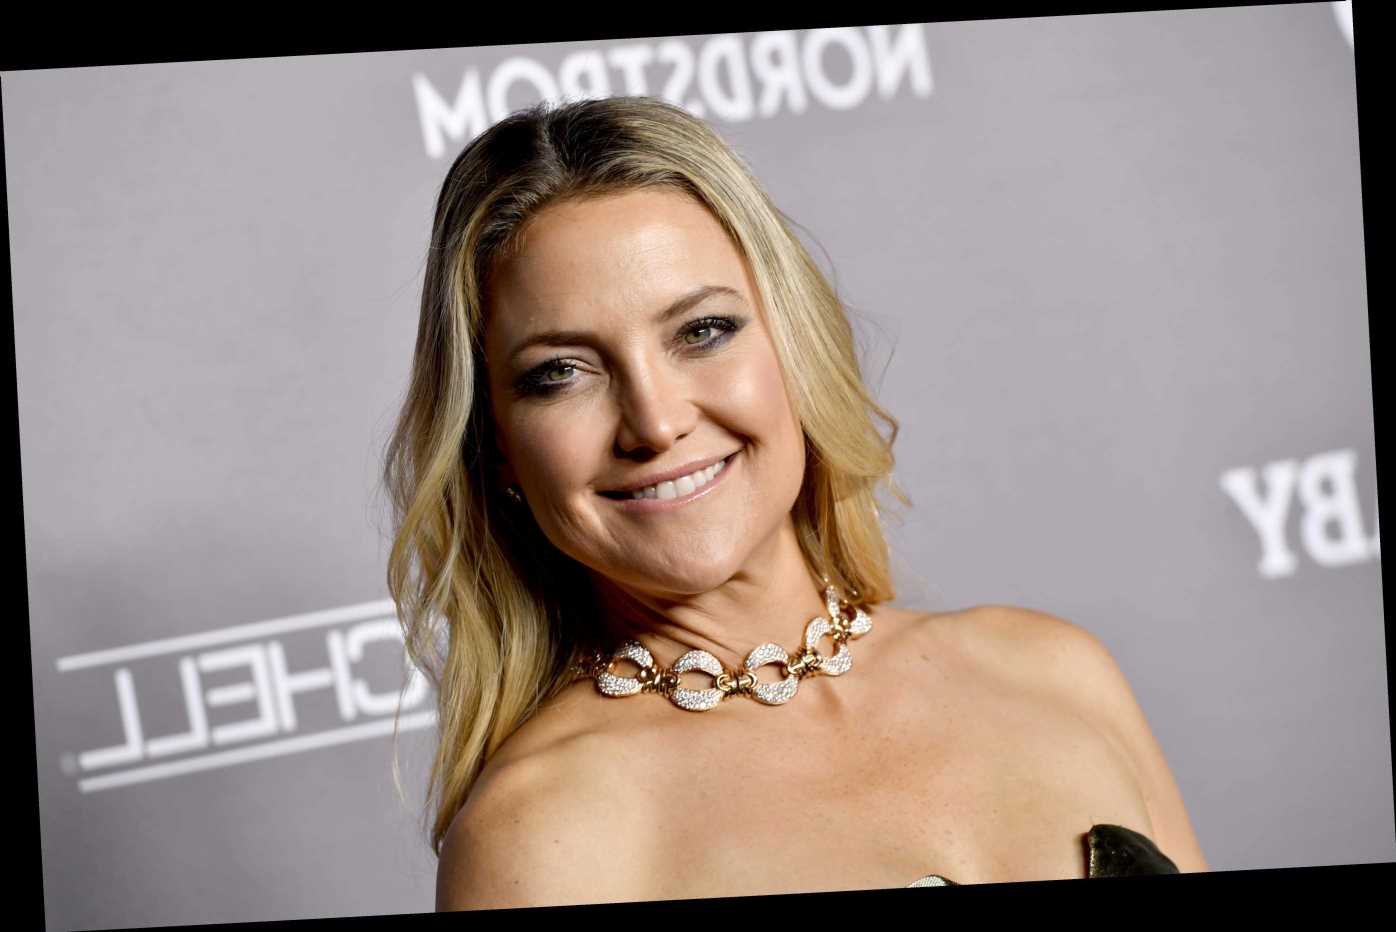 Kate Hudson hopes to reconnect with estranged father, siblings in 2021